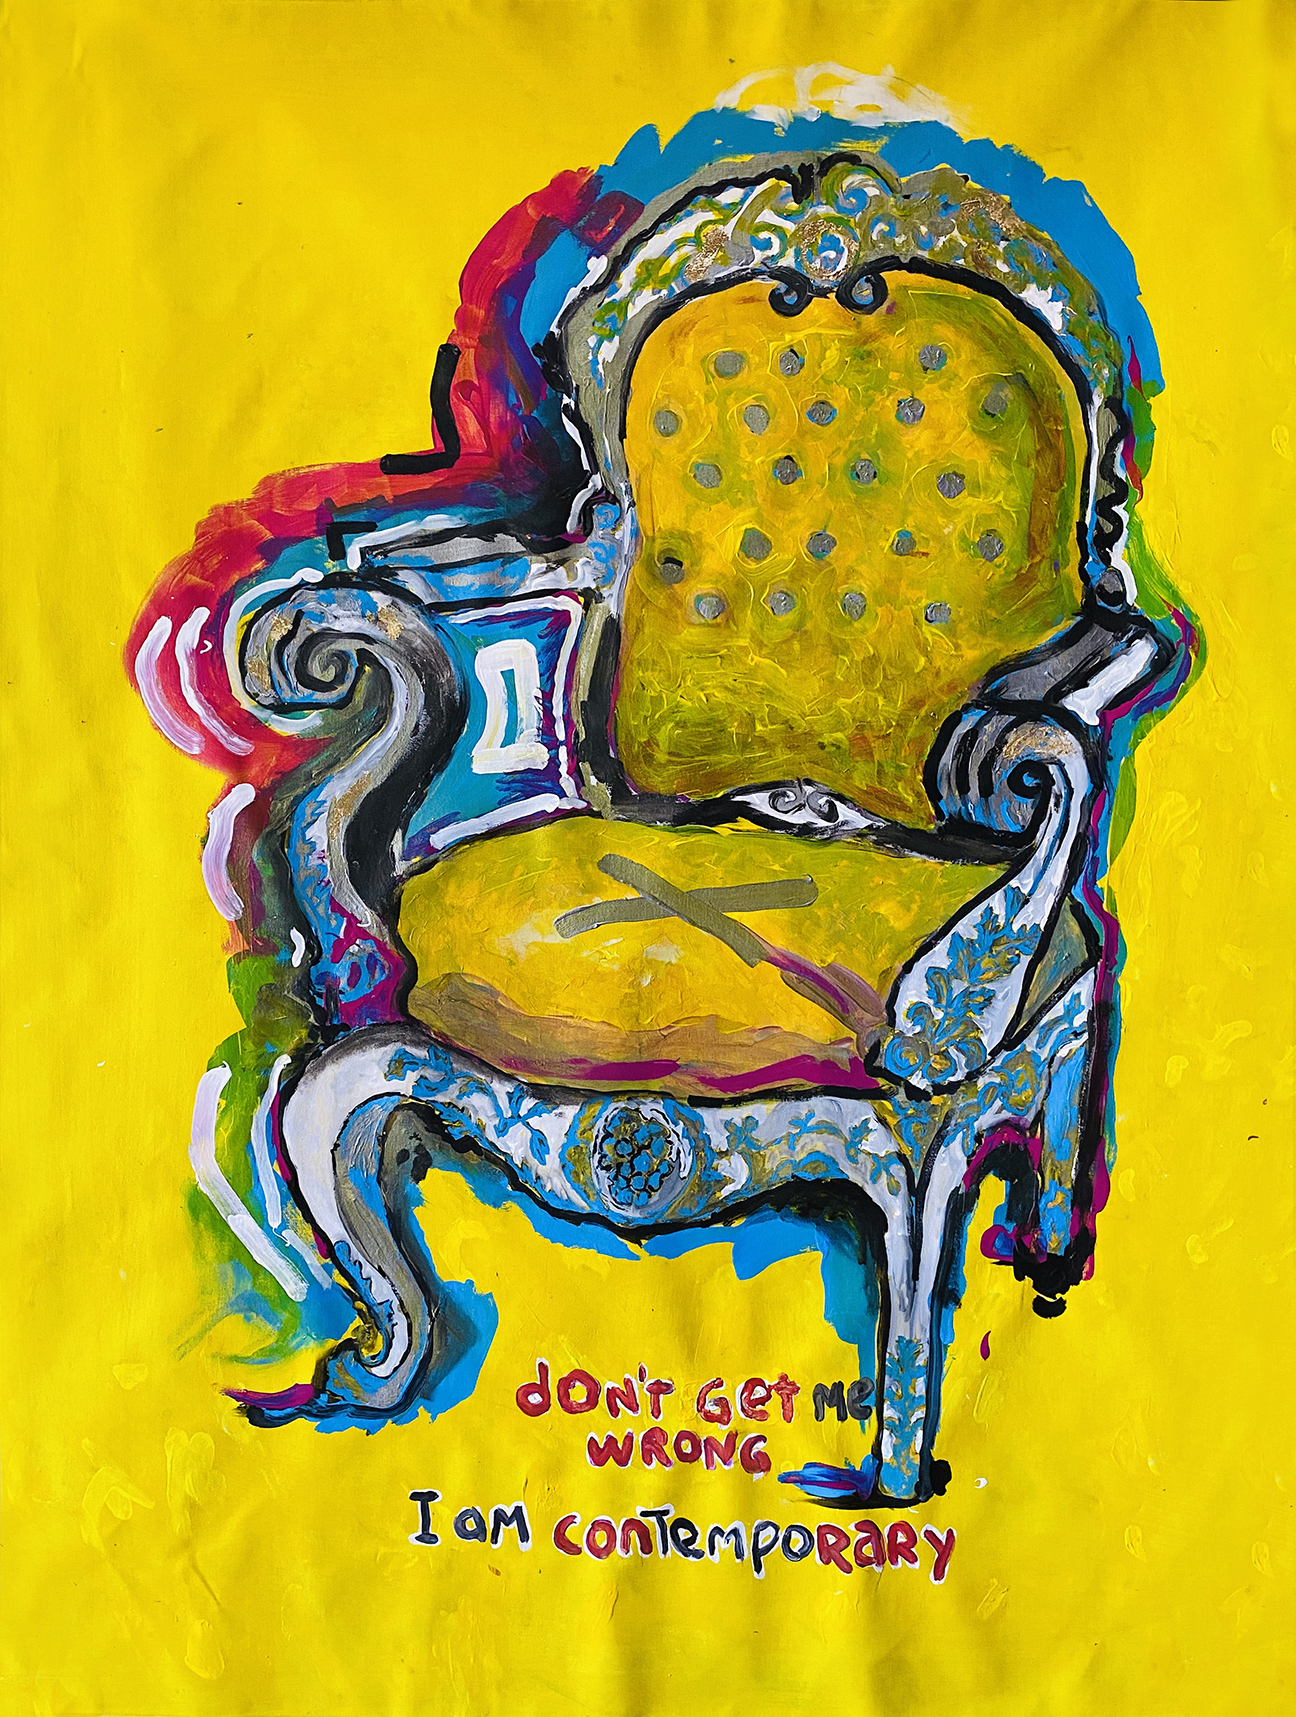 Dont Get Me Wrong I Am Contemporary artwork by Alvaro Segura - art listed for sale on Artplode